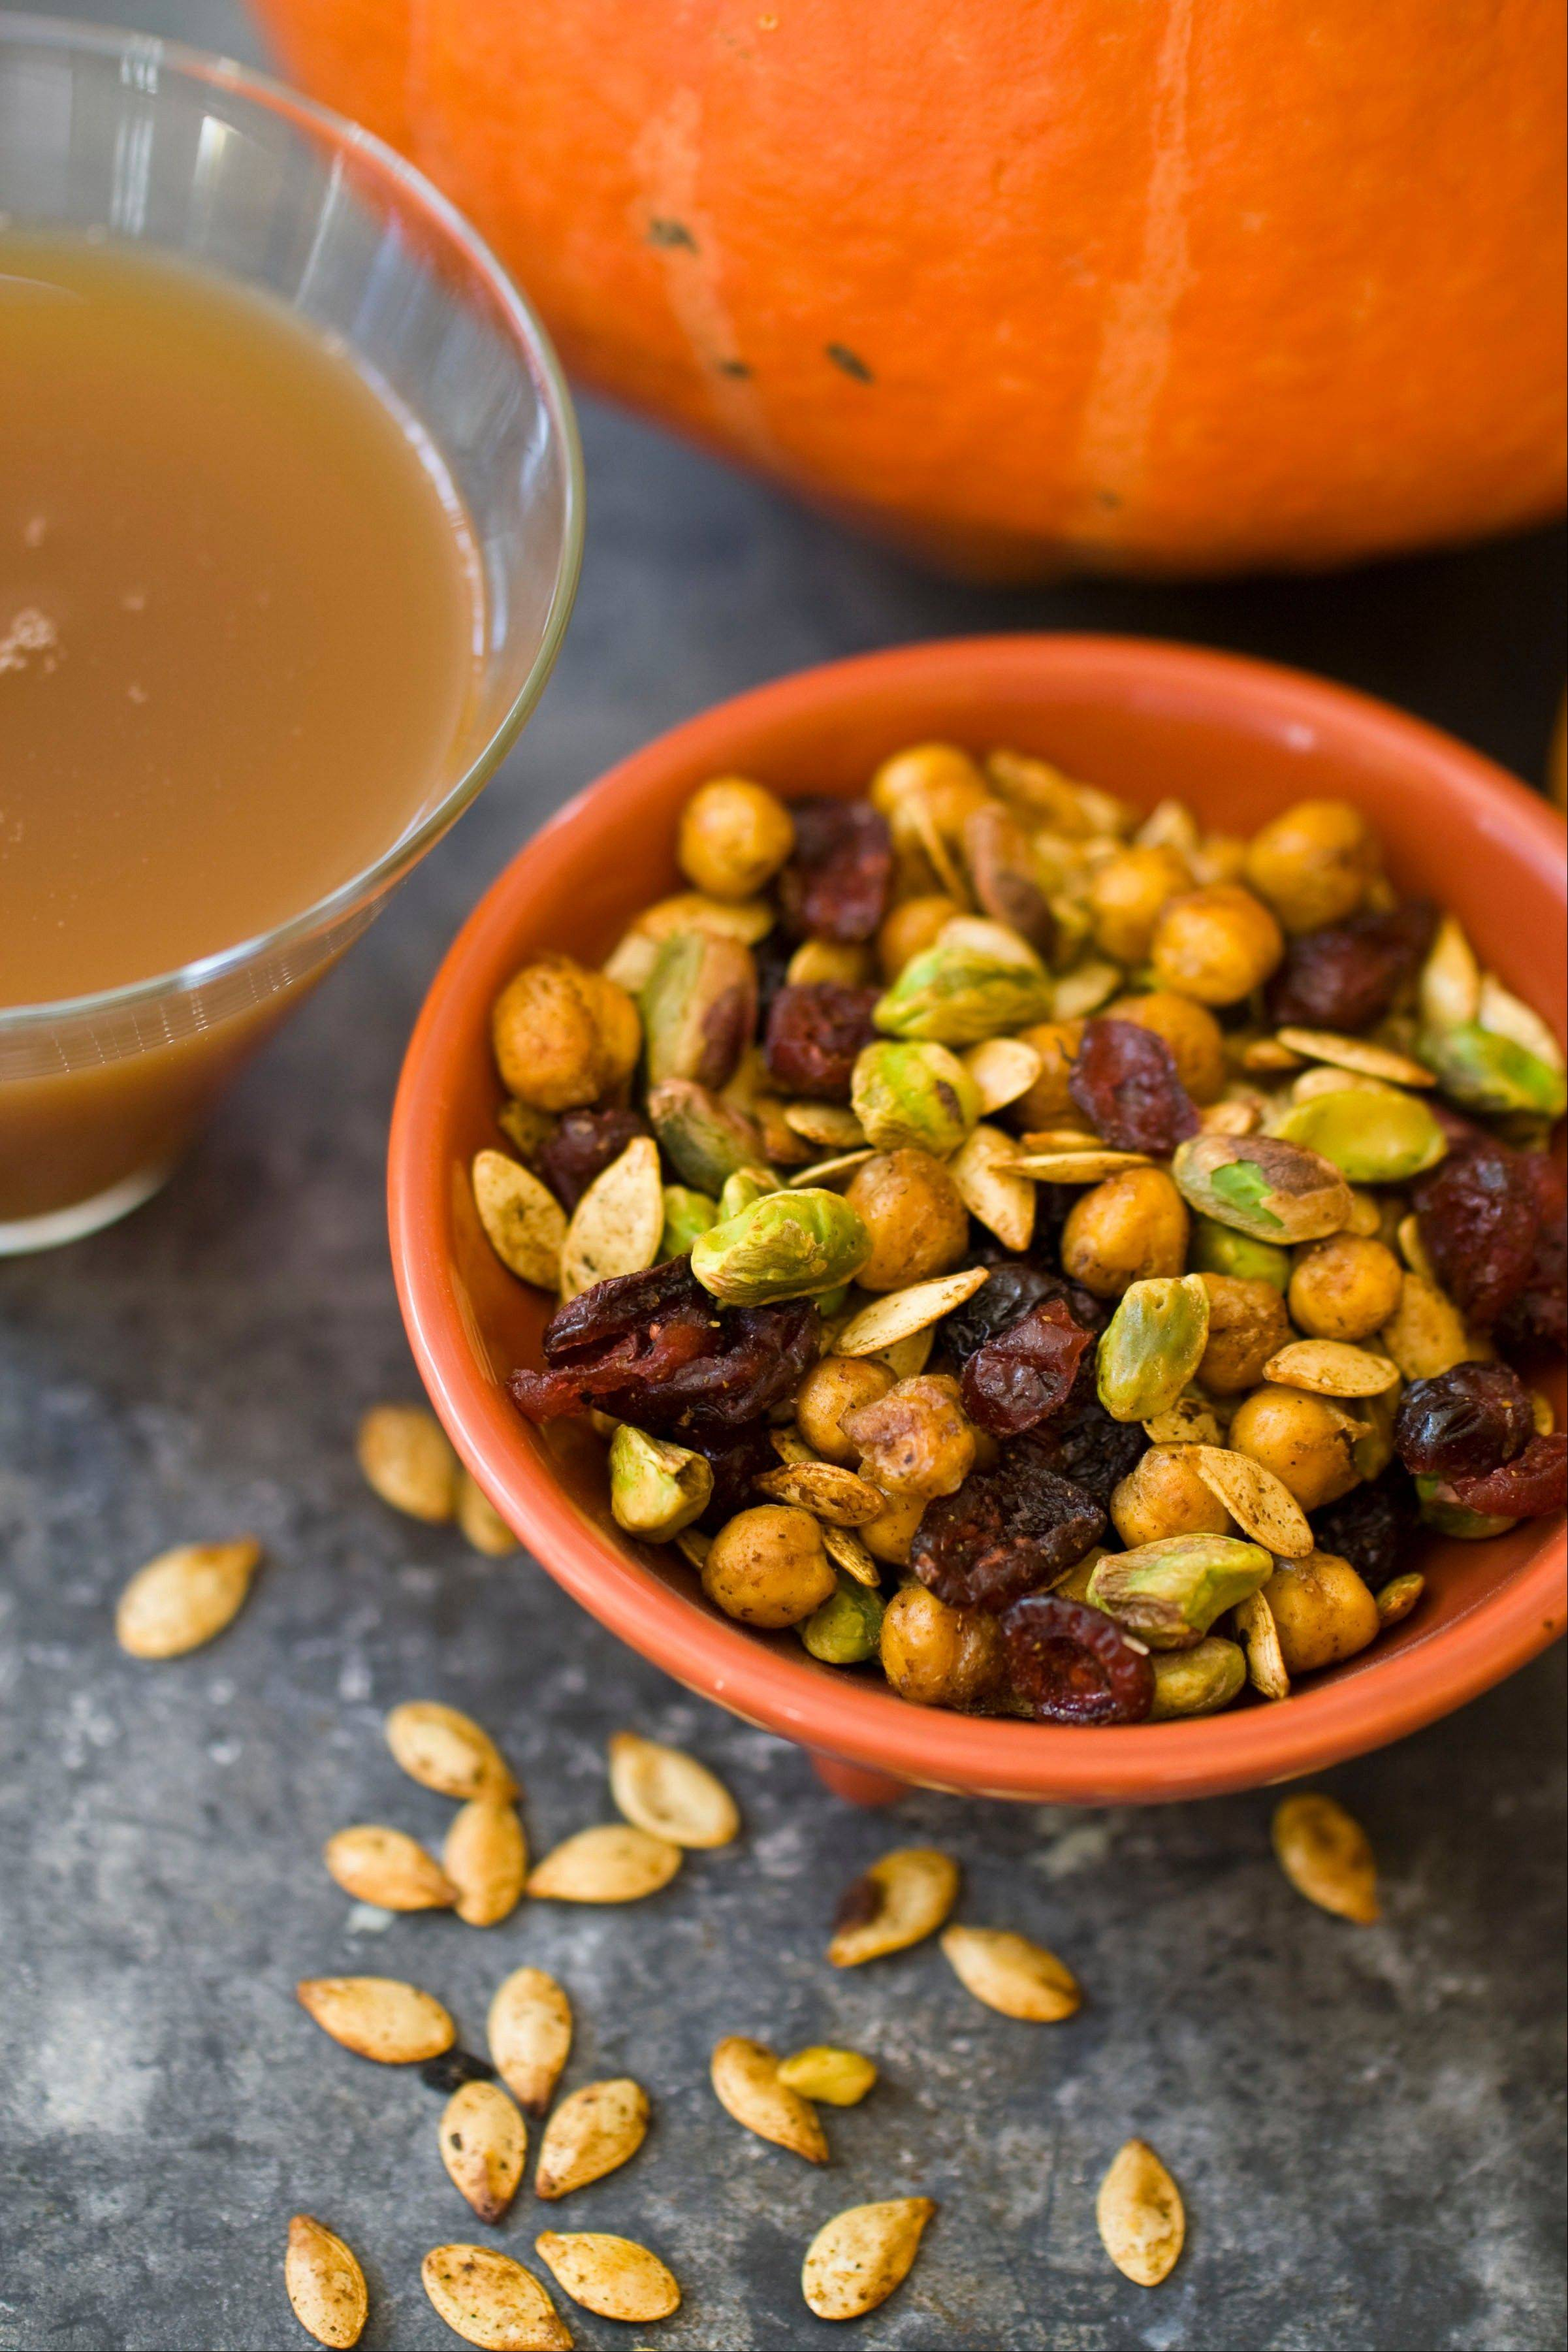 Pumpkin seeds mingle with pistachios and dried cranberries in this Healthy Halloween Snack Mix.